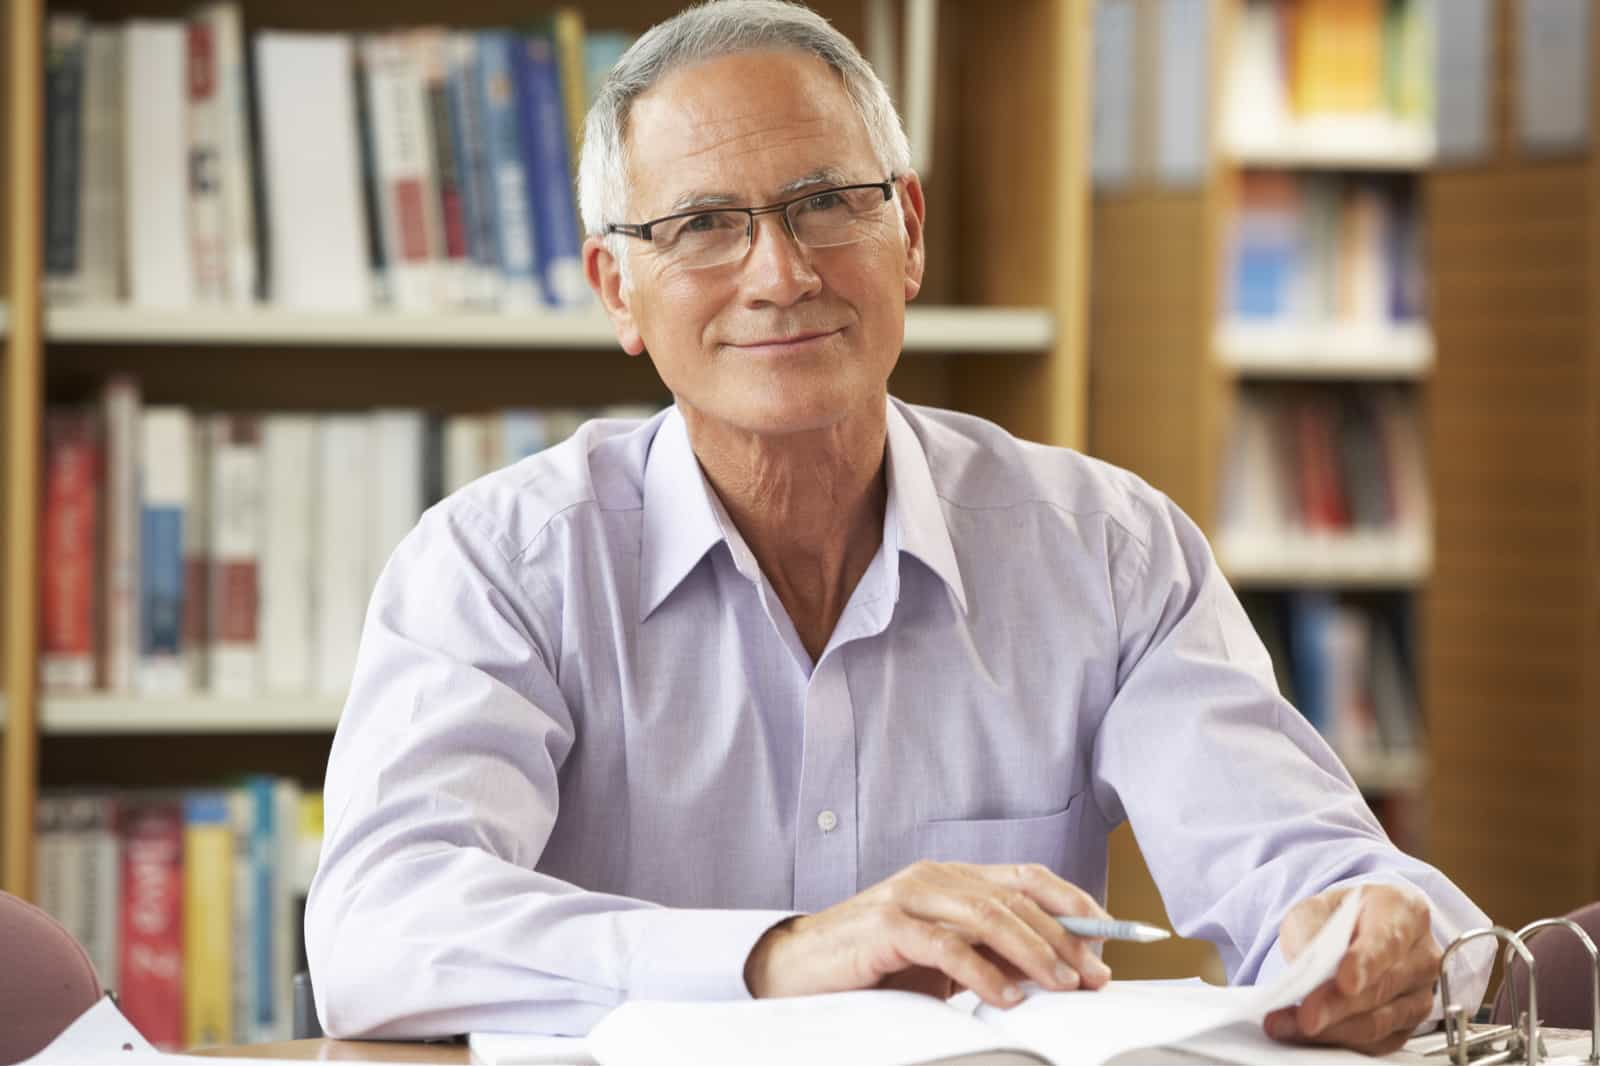 Smiling older male in library